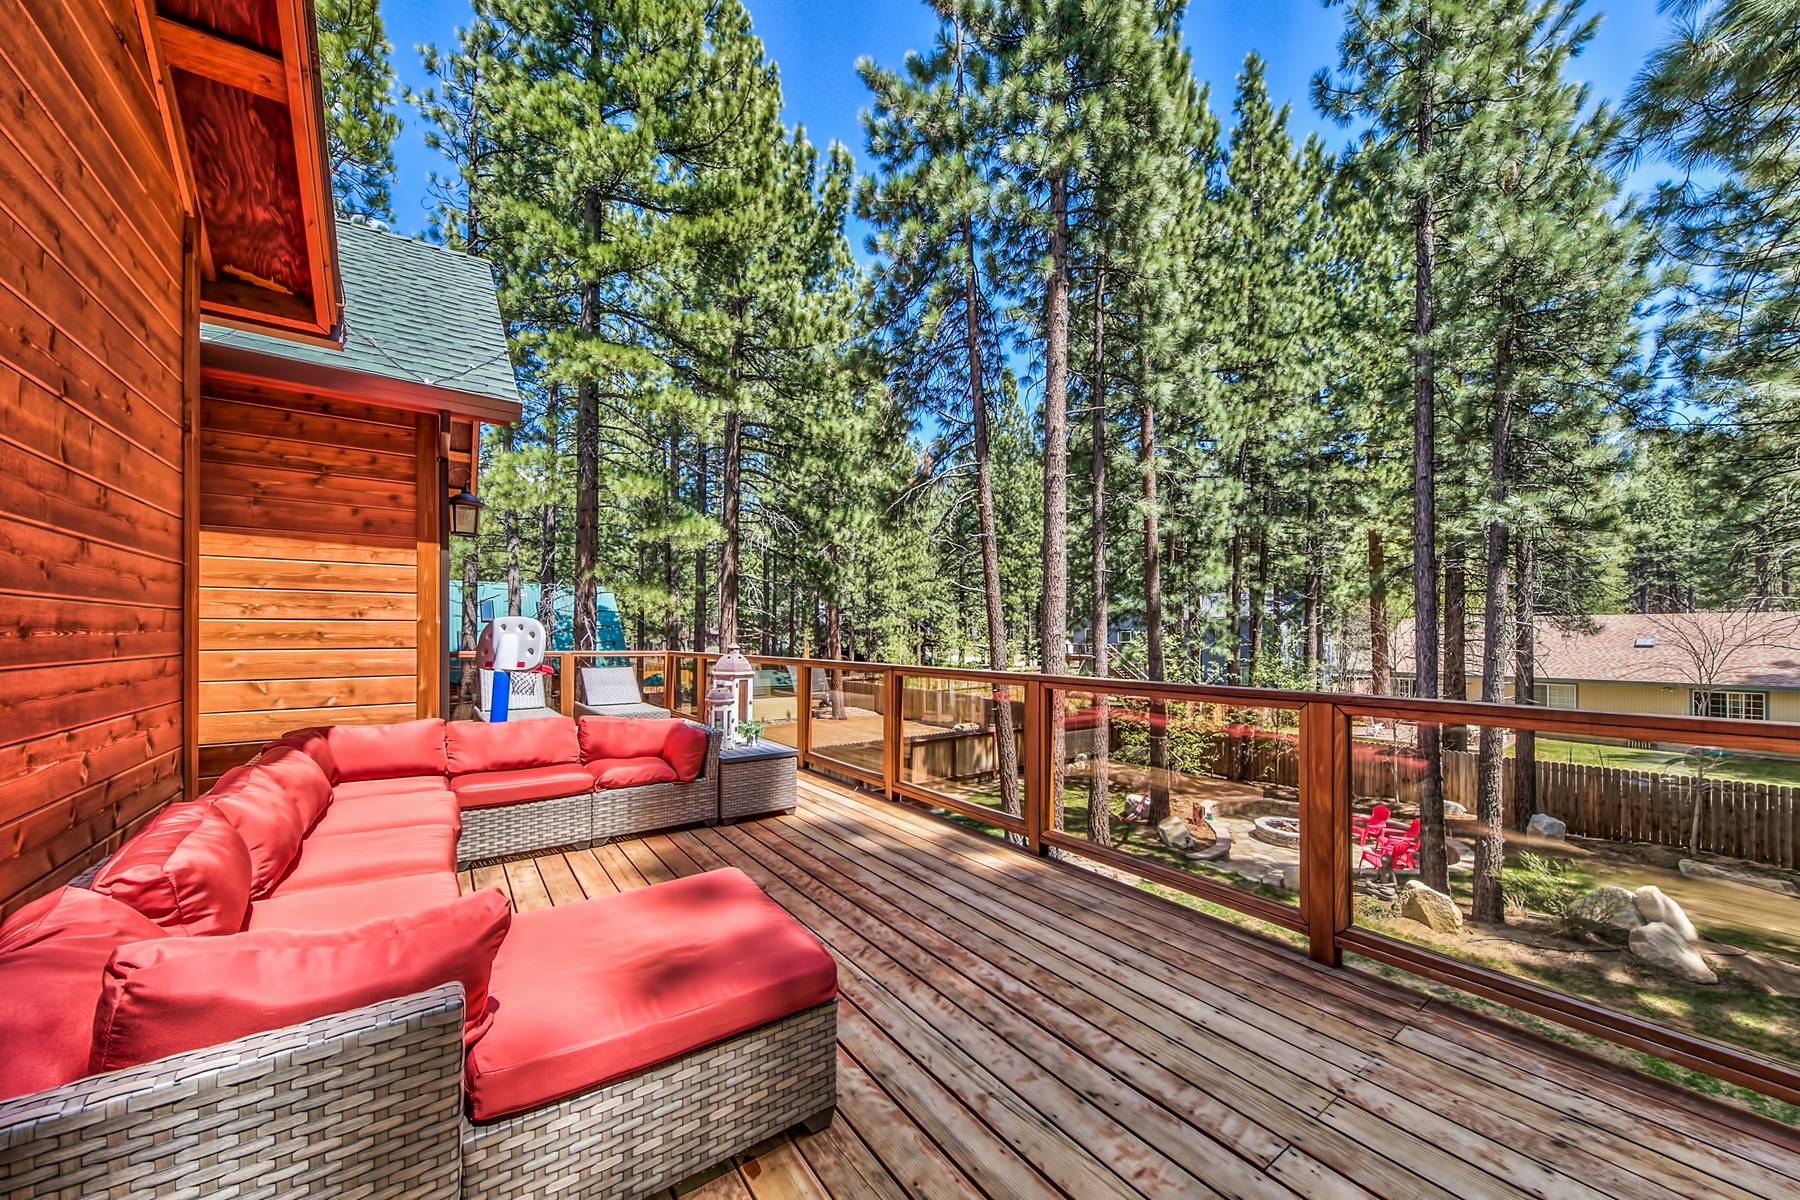 Additional photo for property listing at 3392 Hobart Rd., South Lake Tahoe, CA 3392 Hobart Rd. South Lake Tahoe, California 96150 United States